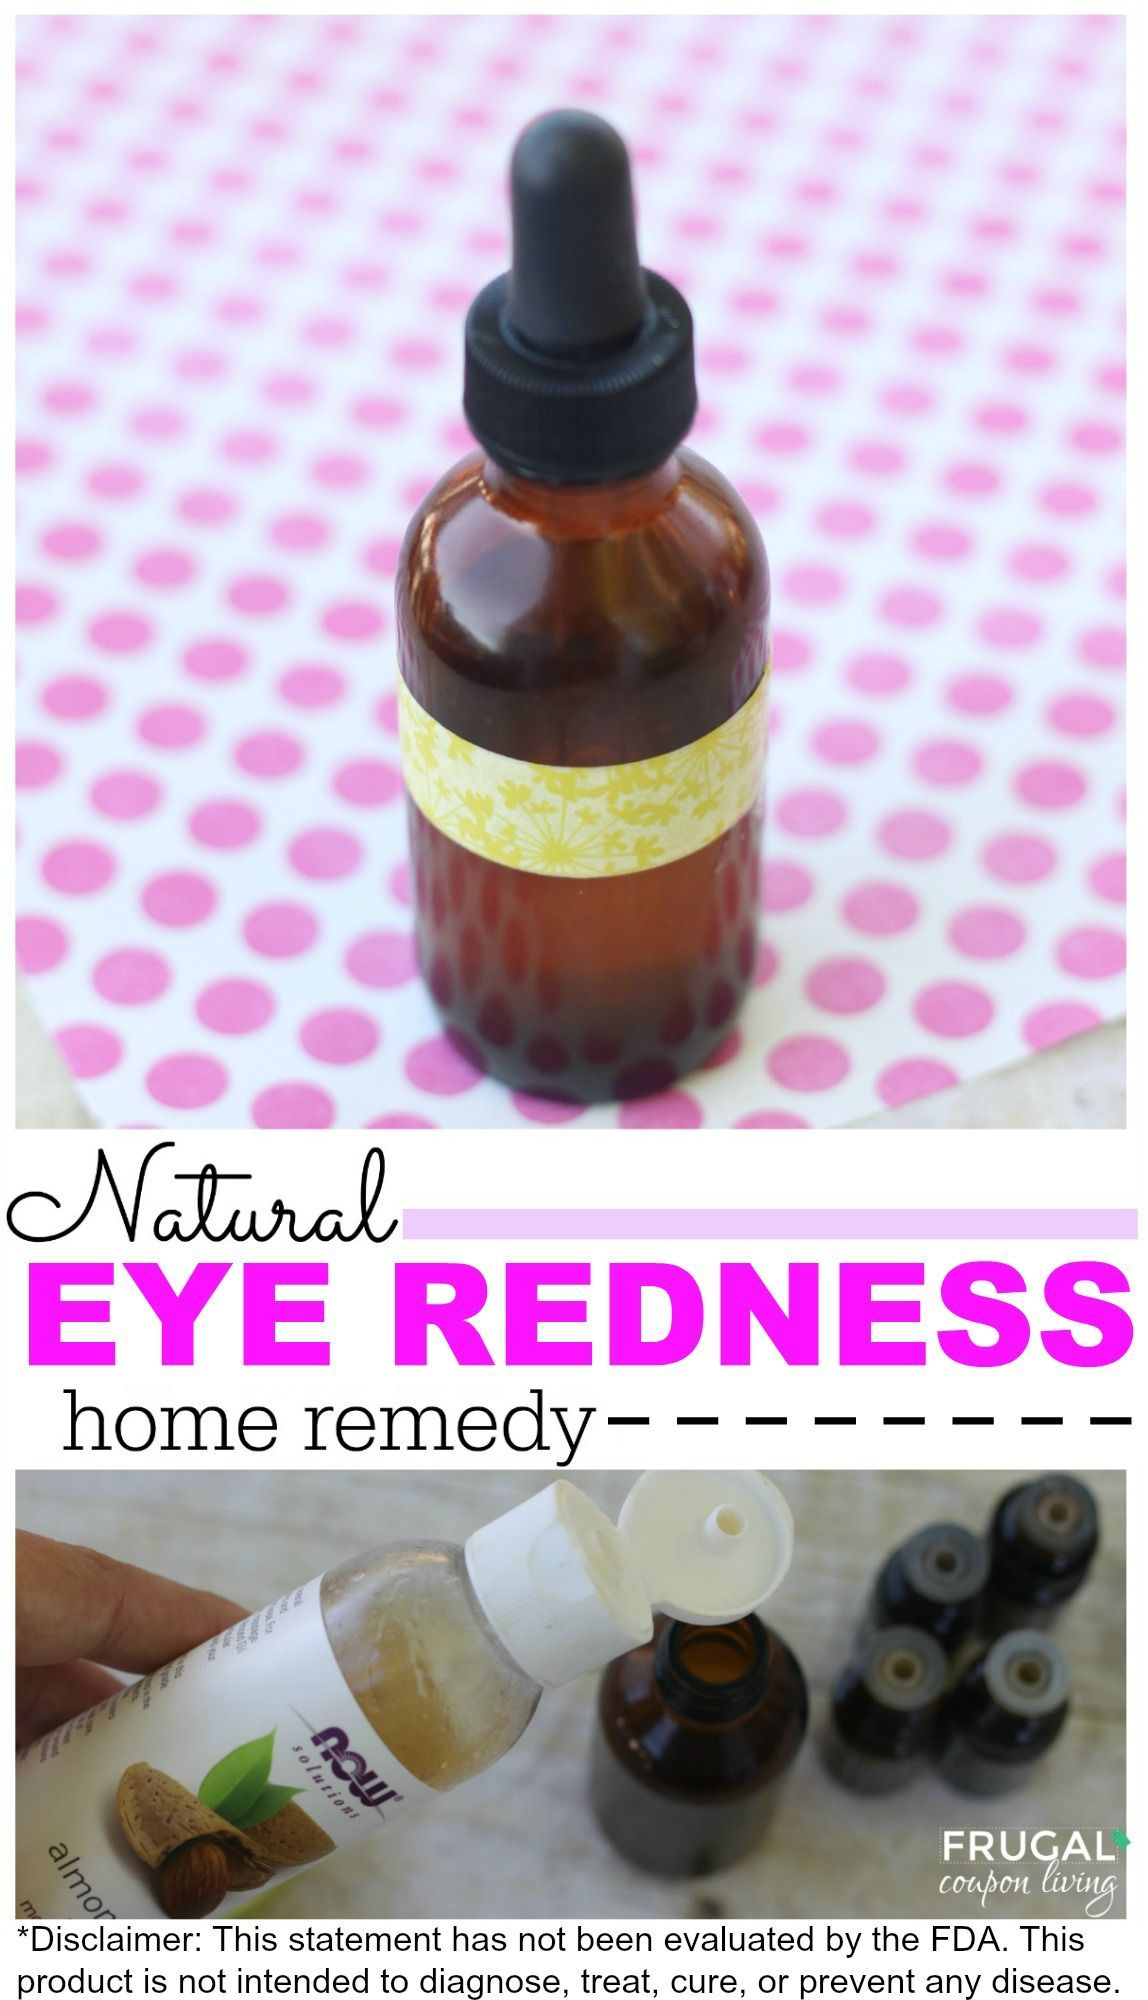 Natural Eye Redness Home Remedy Remedies, Red eyes